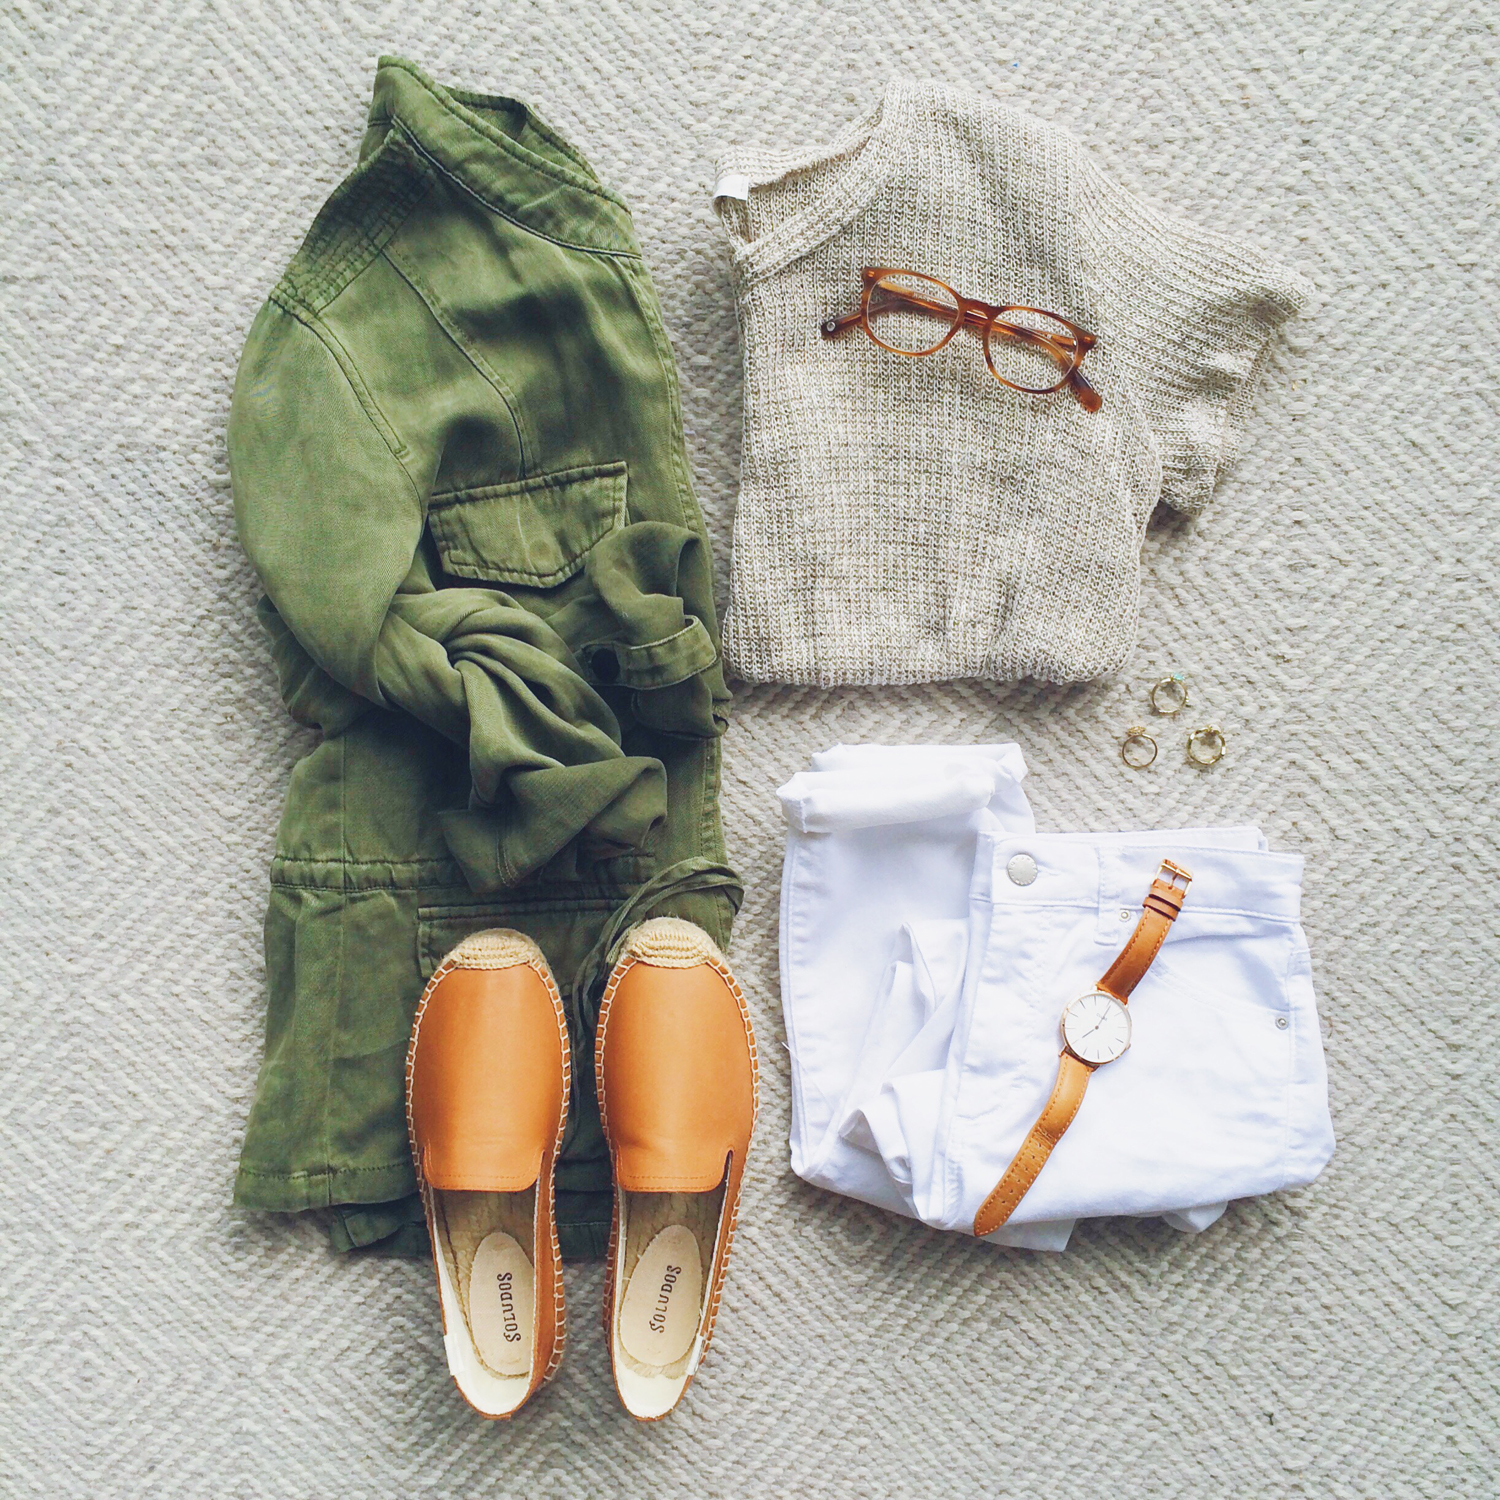 livvyland-blog-olivia-watson-austin-texas-fashion-blogger-sanctuary-clothing-utility-jacket-spring-outfit-weekend-casual-cute-easy-simple-chic-warby-parker-lyle-glasses